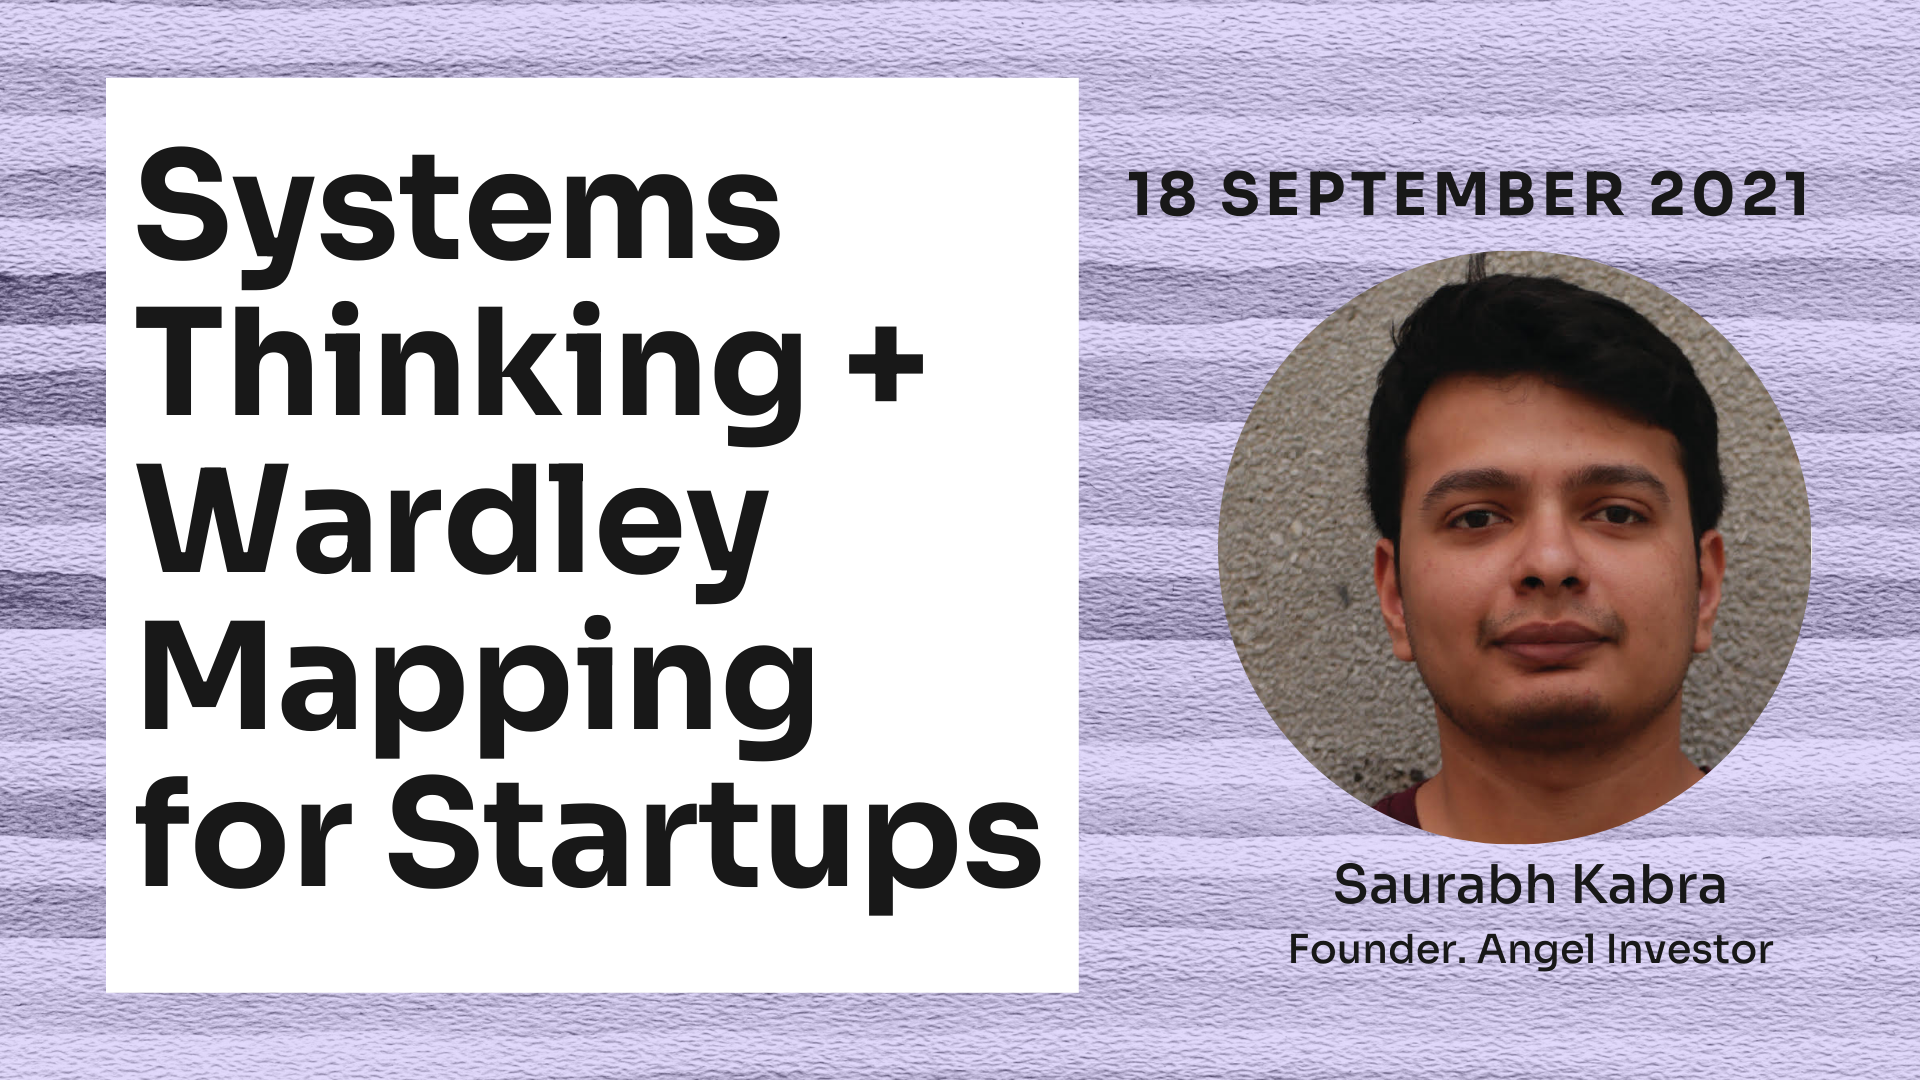 Systems Thinking + Wardley Mapping for Startups